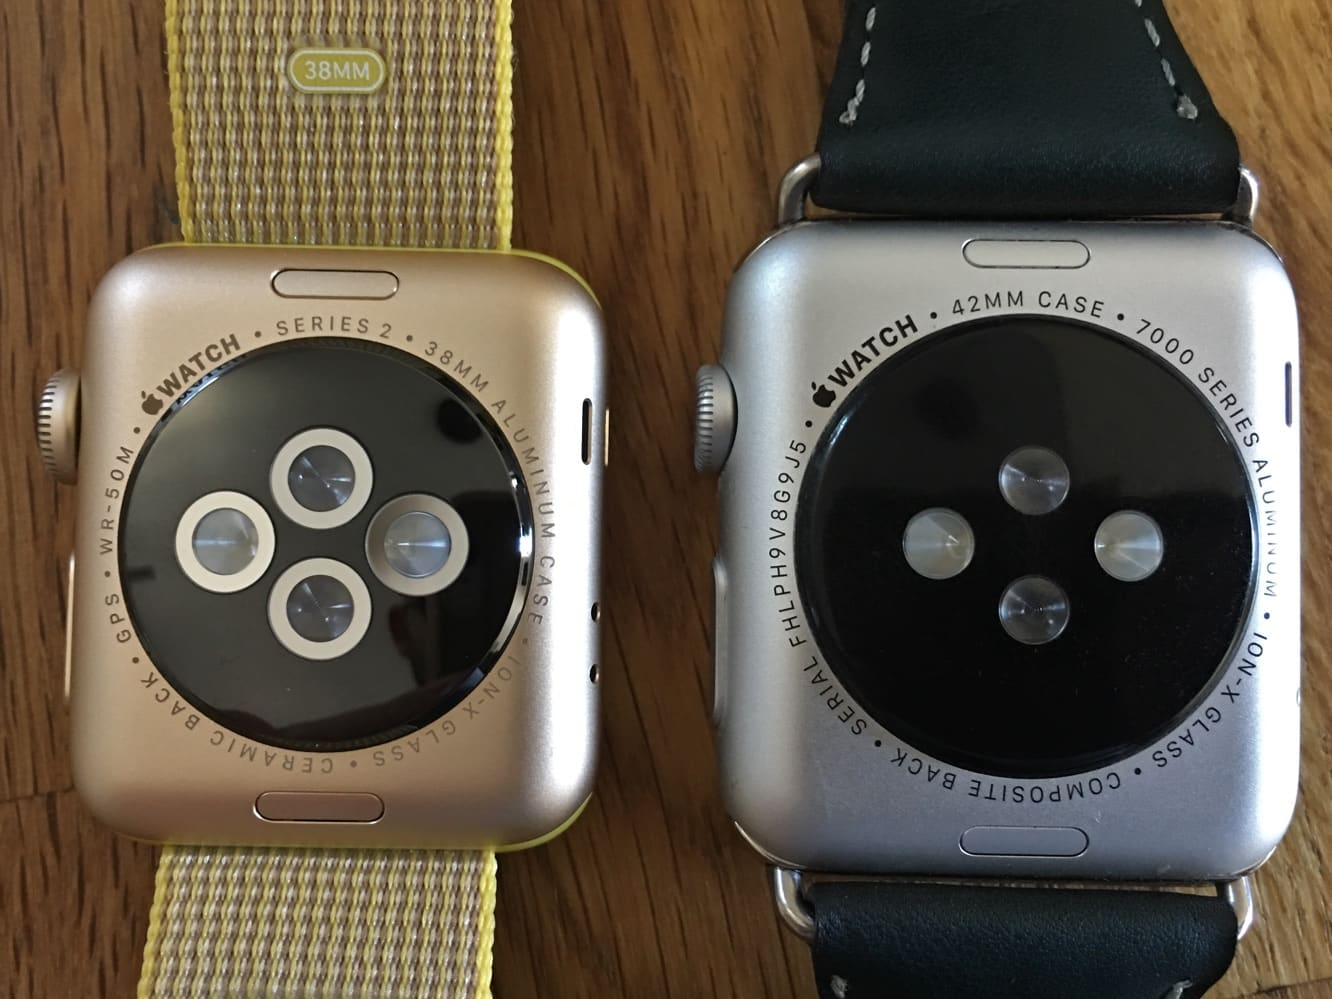 Apple working with Stanford, American Well to test Apple Watch heart monitoring